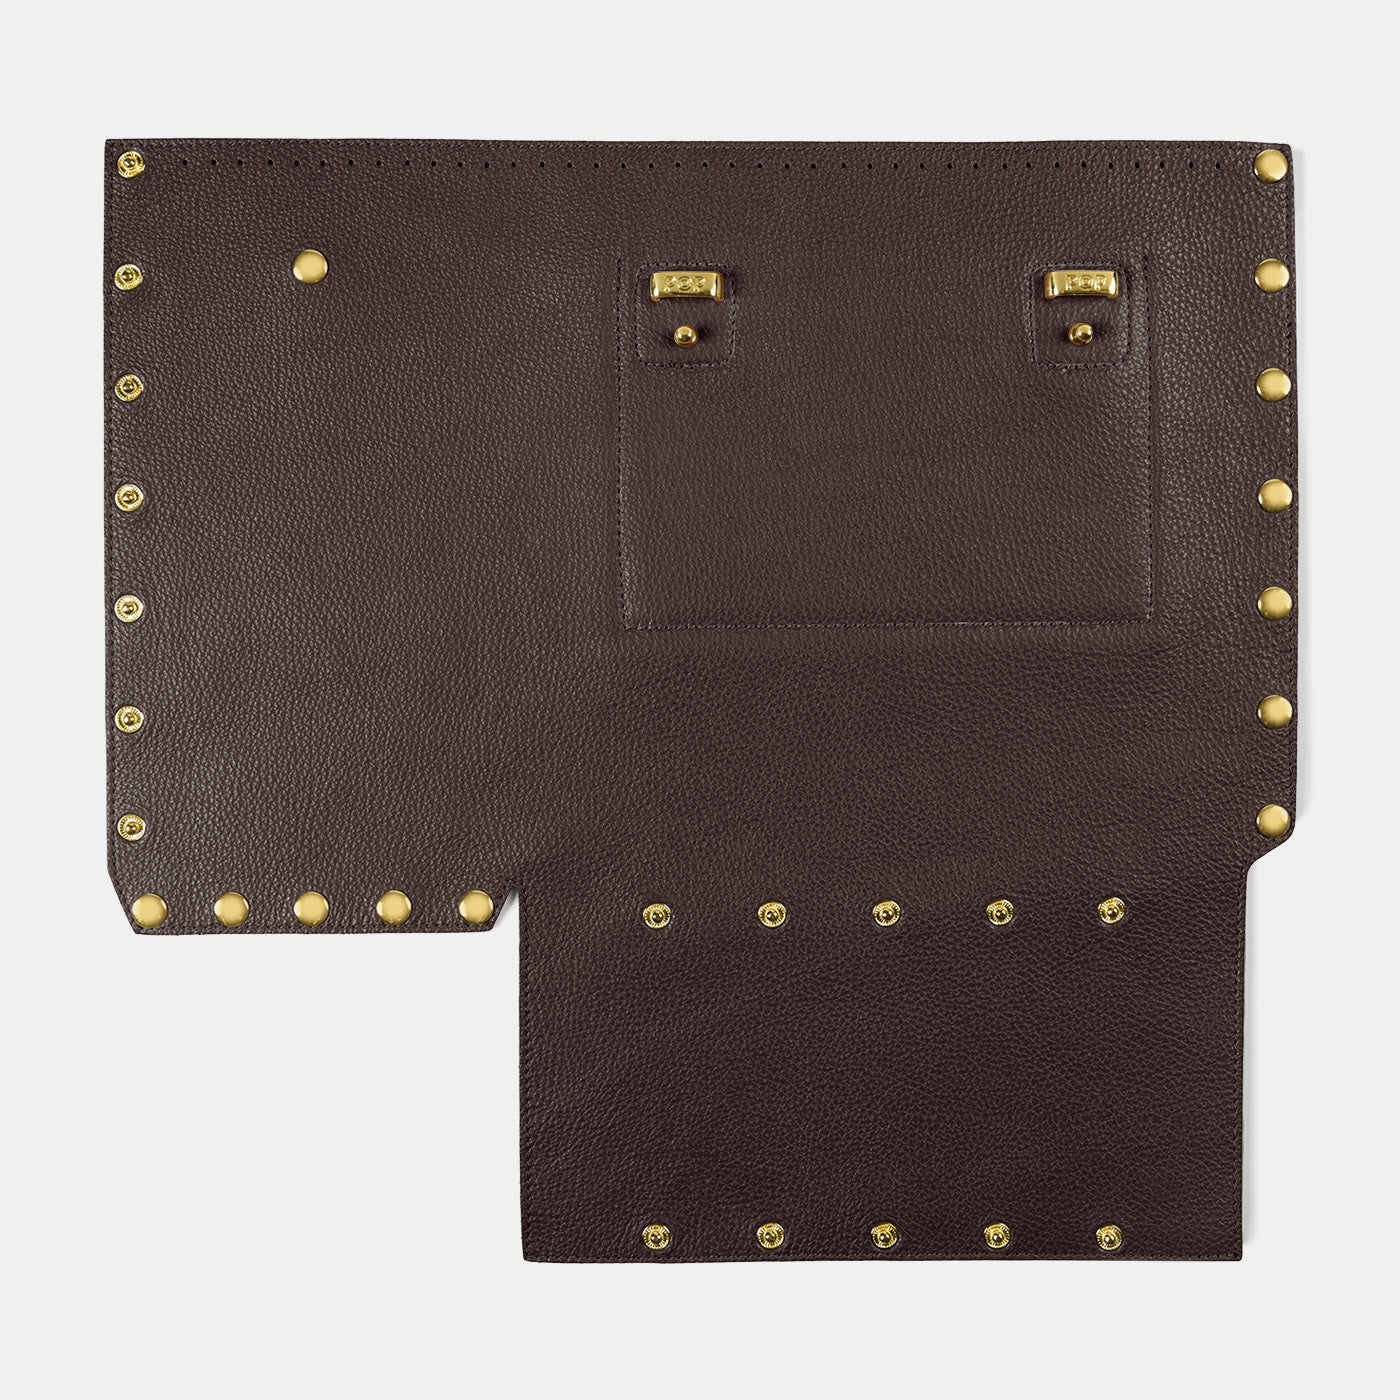 Pebbled leather Back Panel - Pop Bag USA